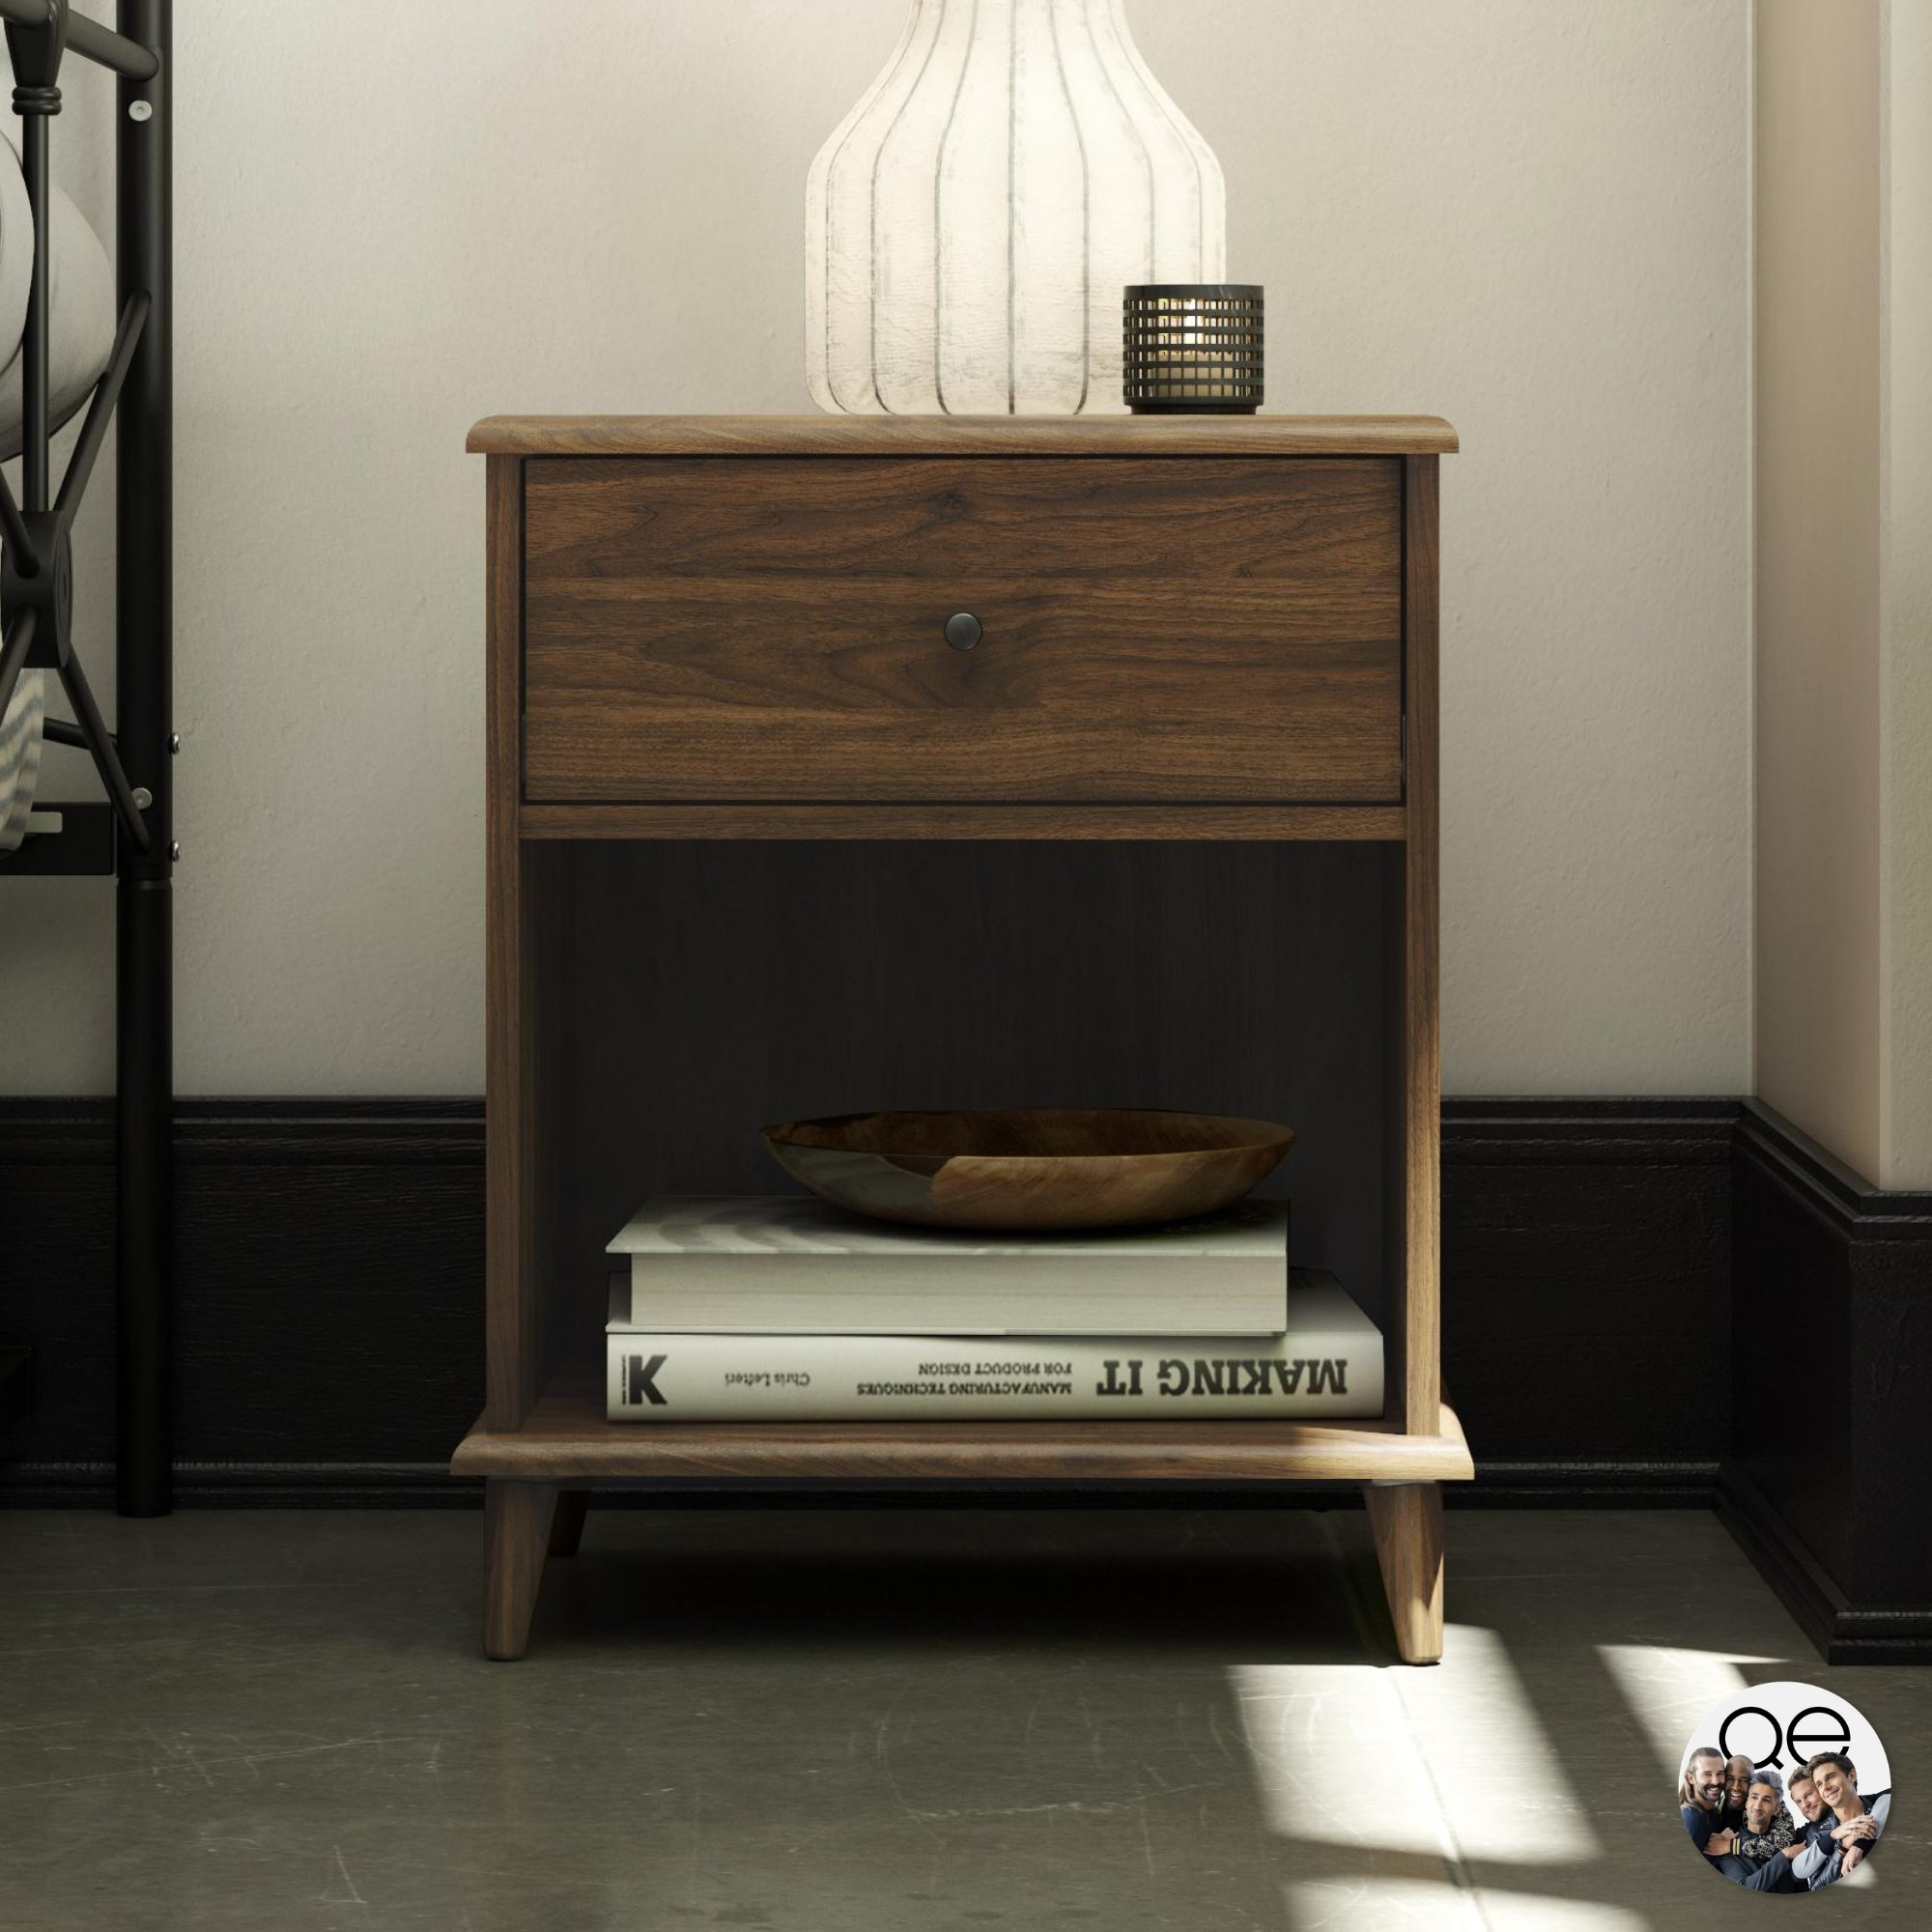 The brown nightstand with a lamp